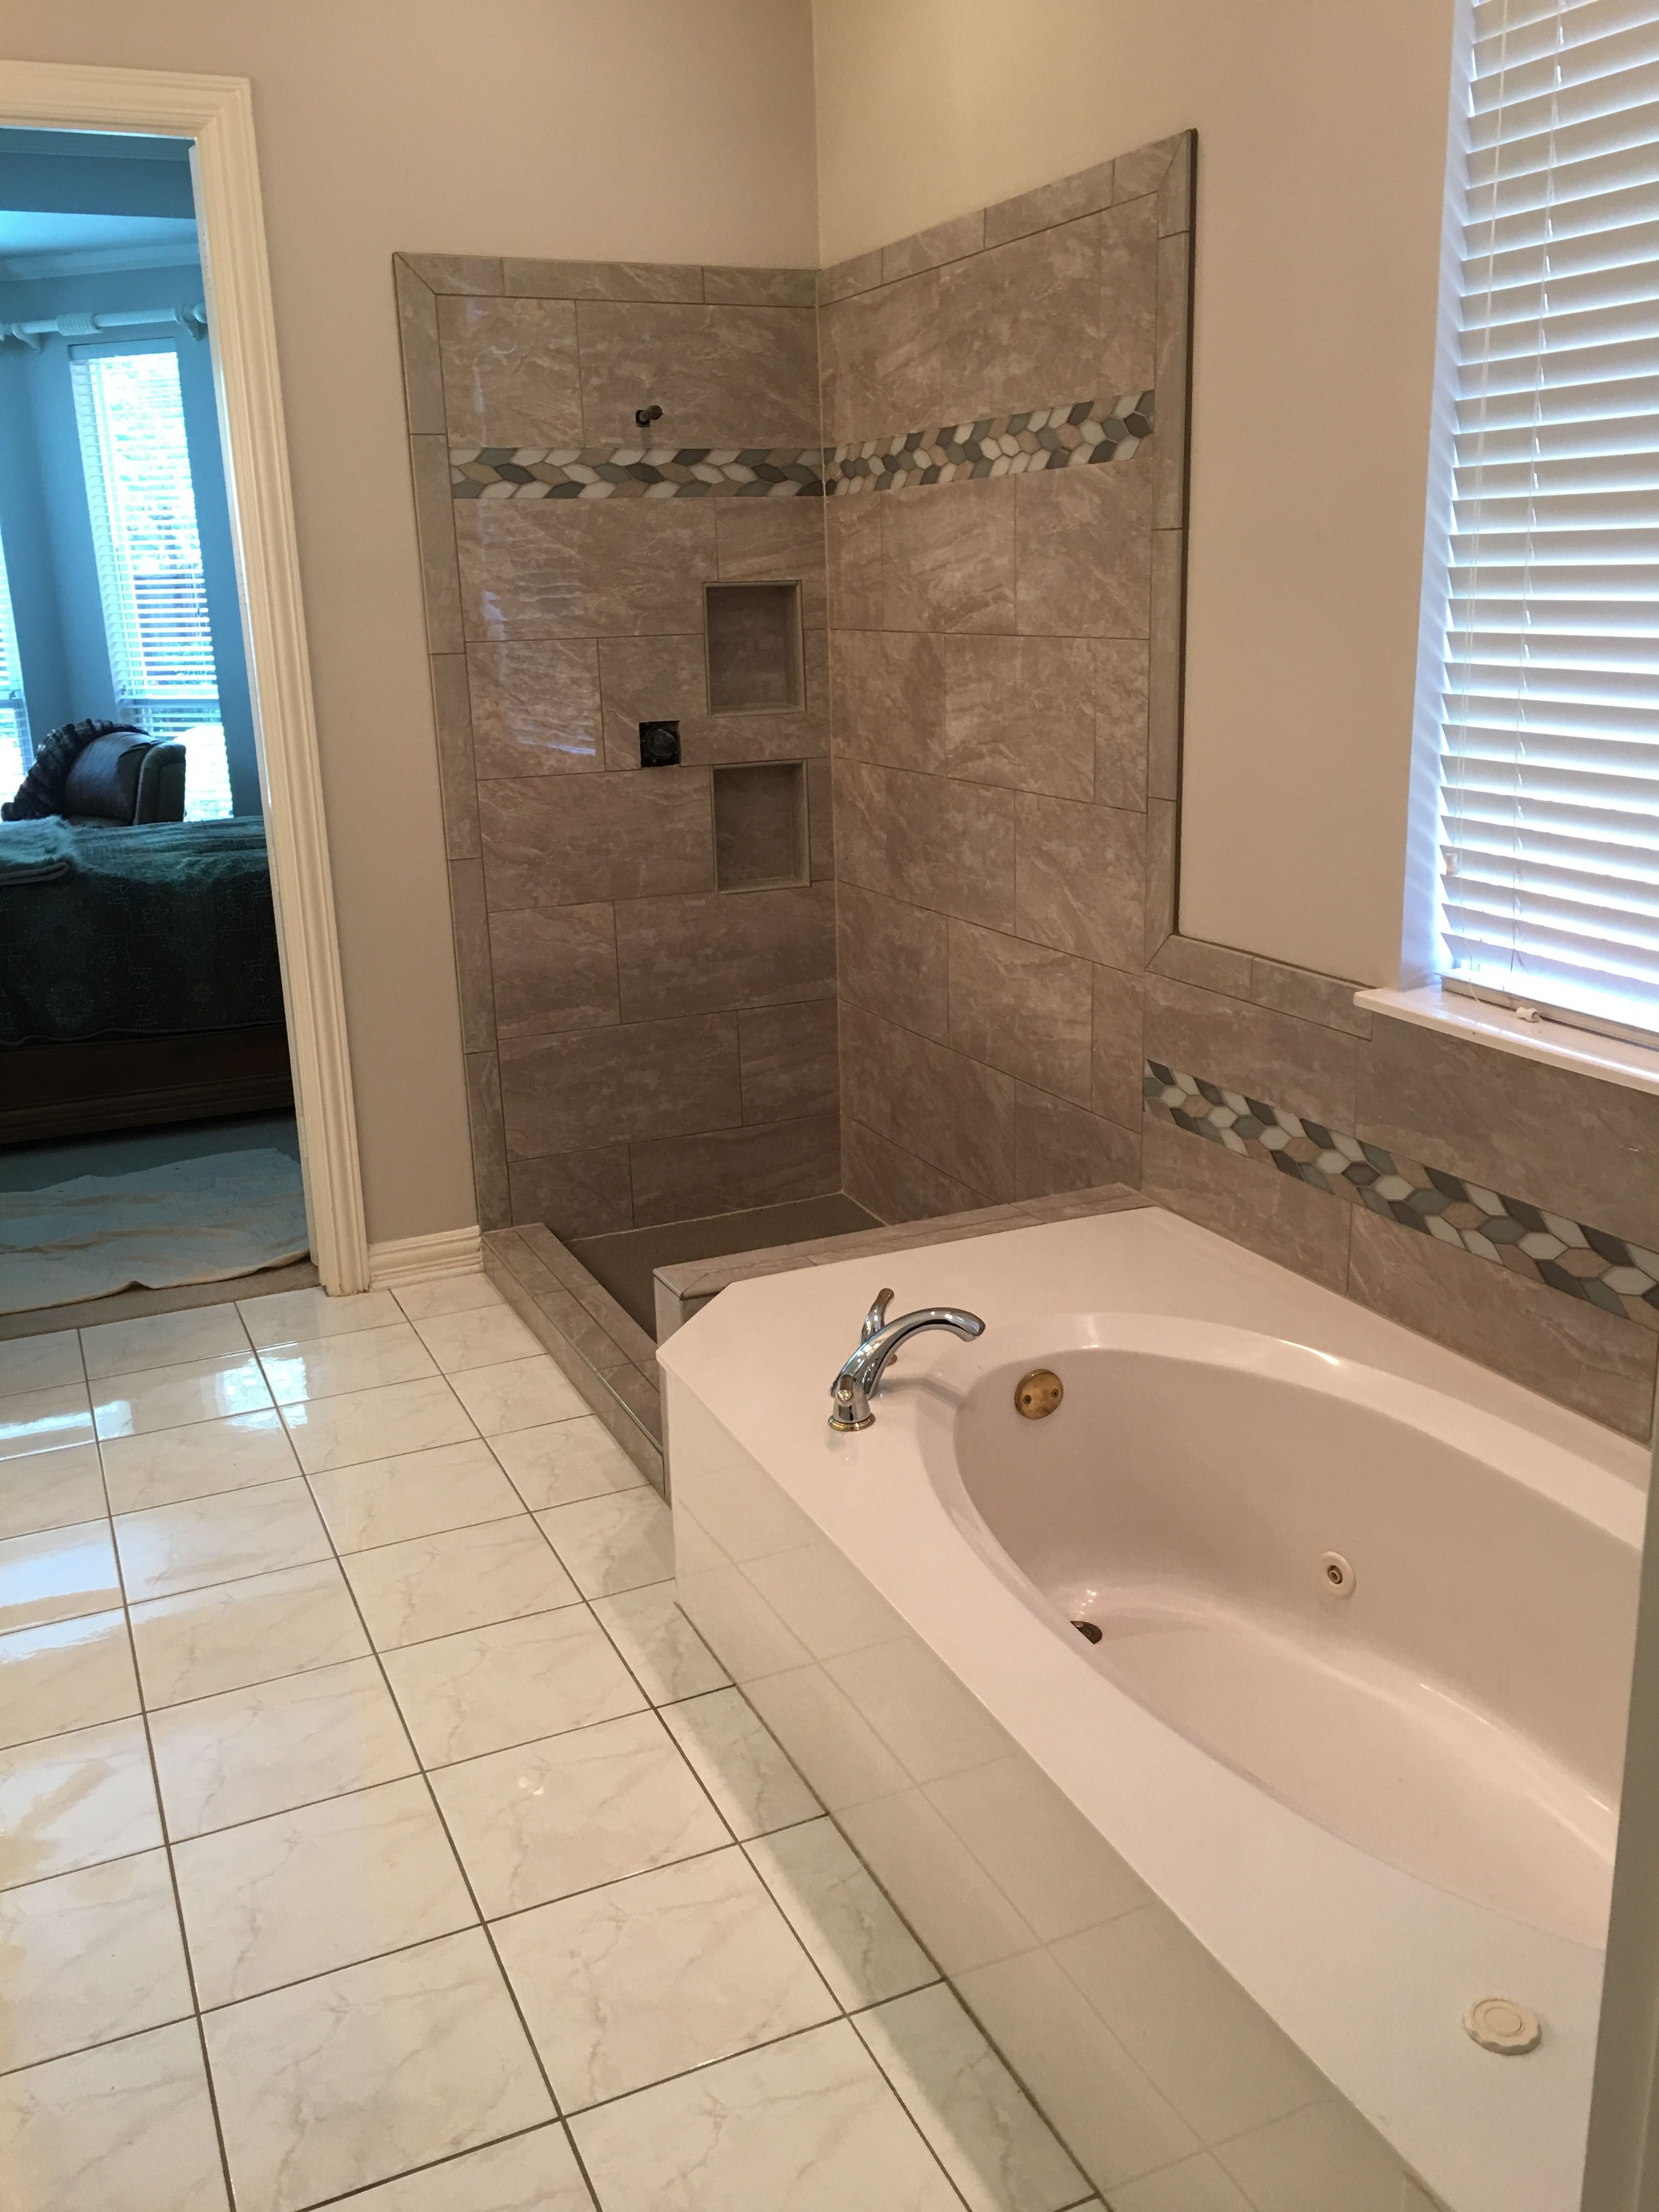 Msi 12x24 Pietra Pearl with glass leaves boarder. | Shower & Tubs ...